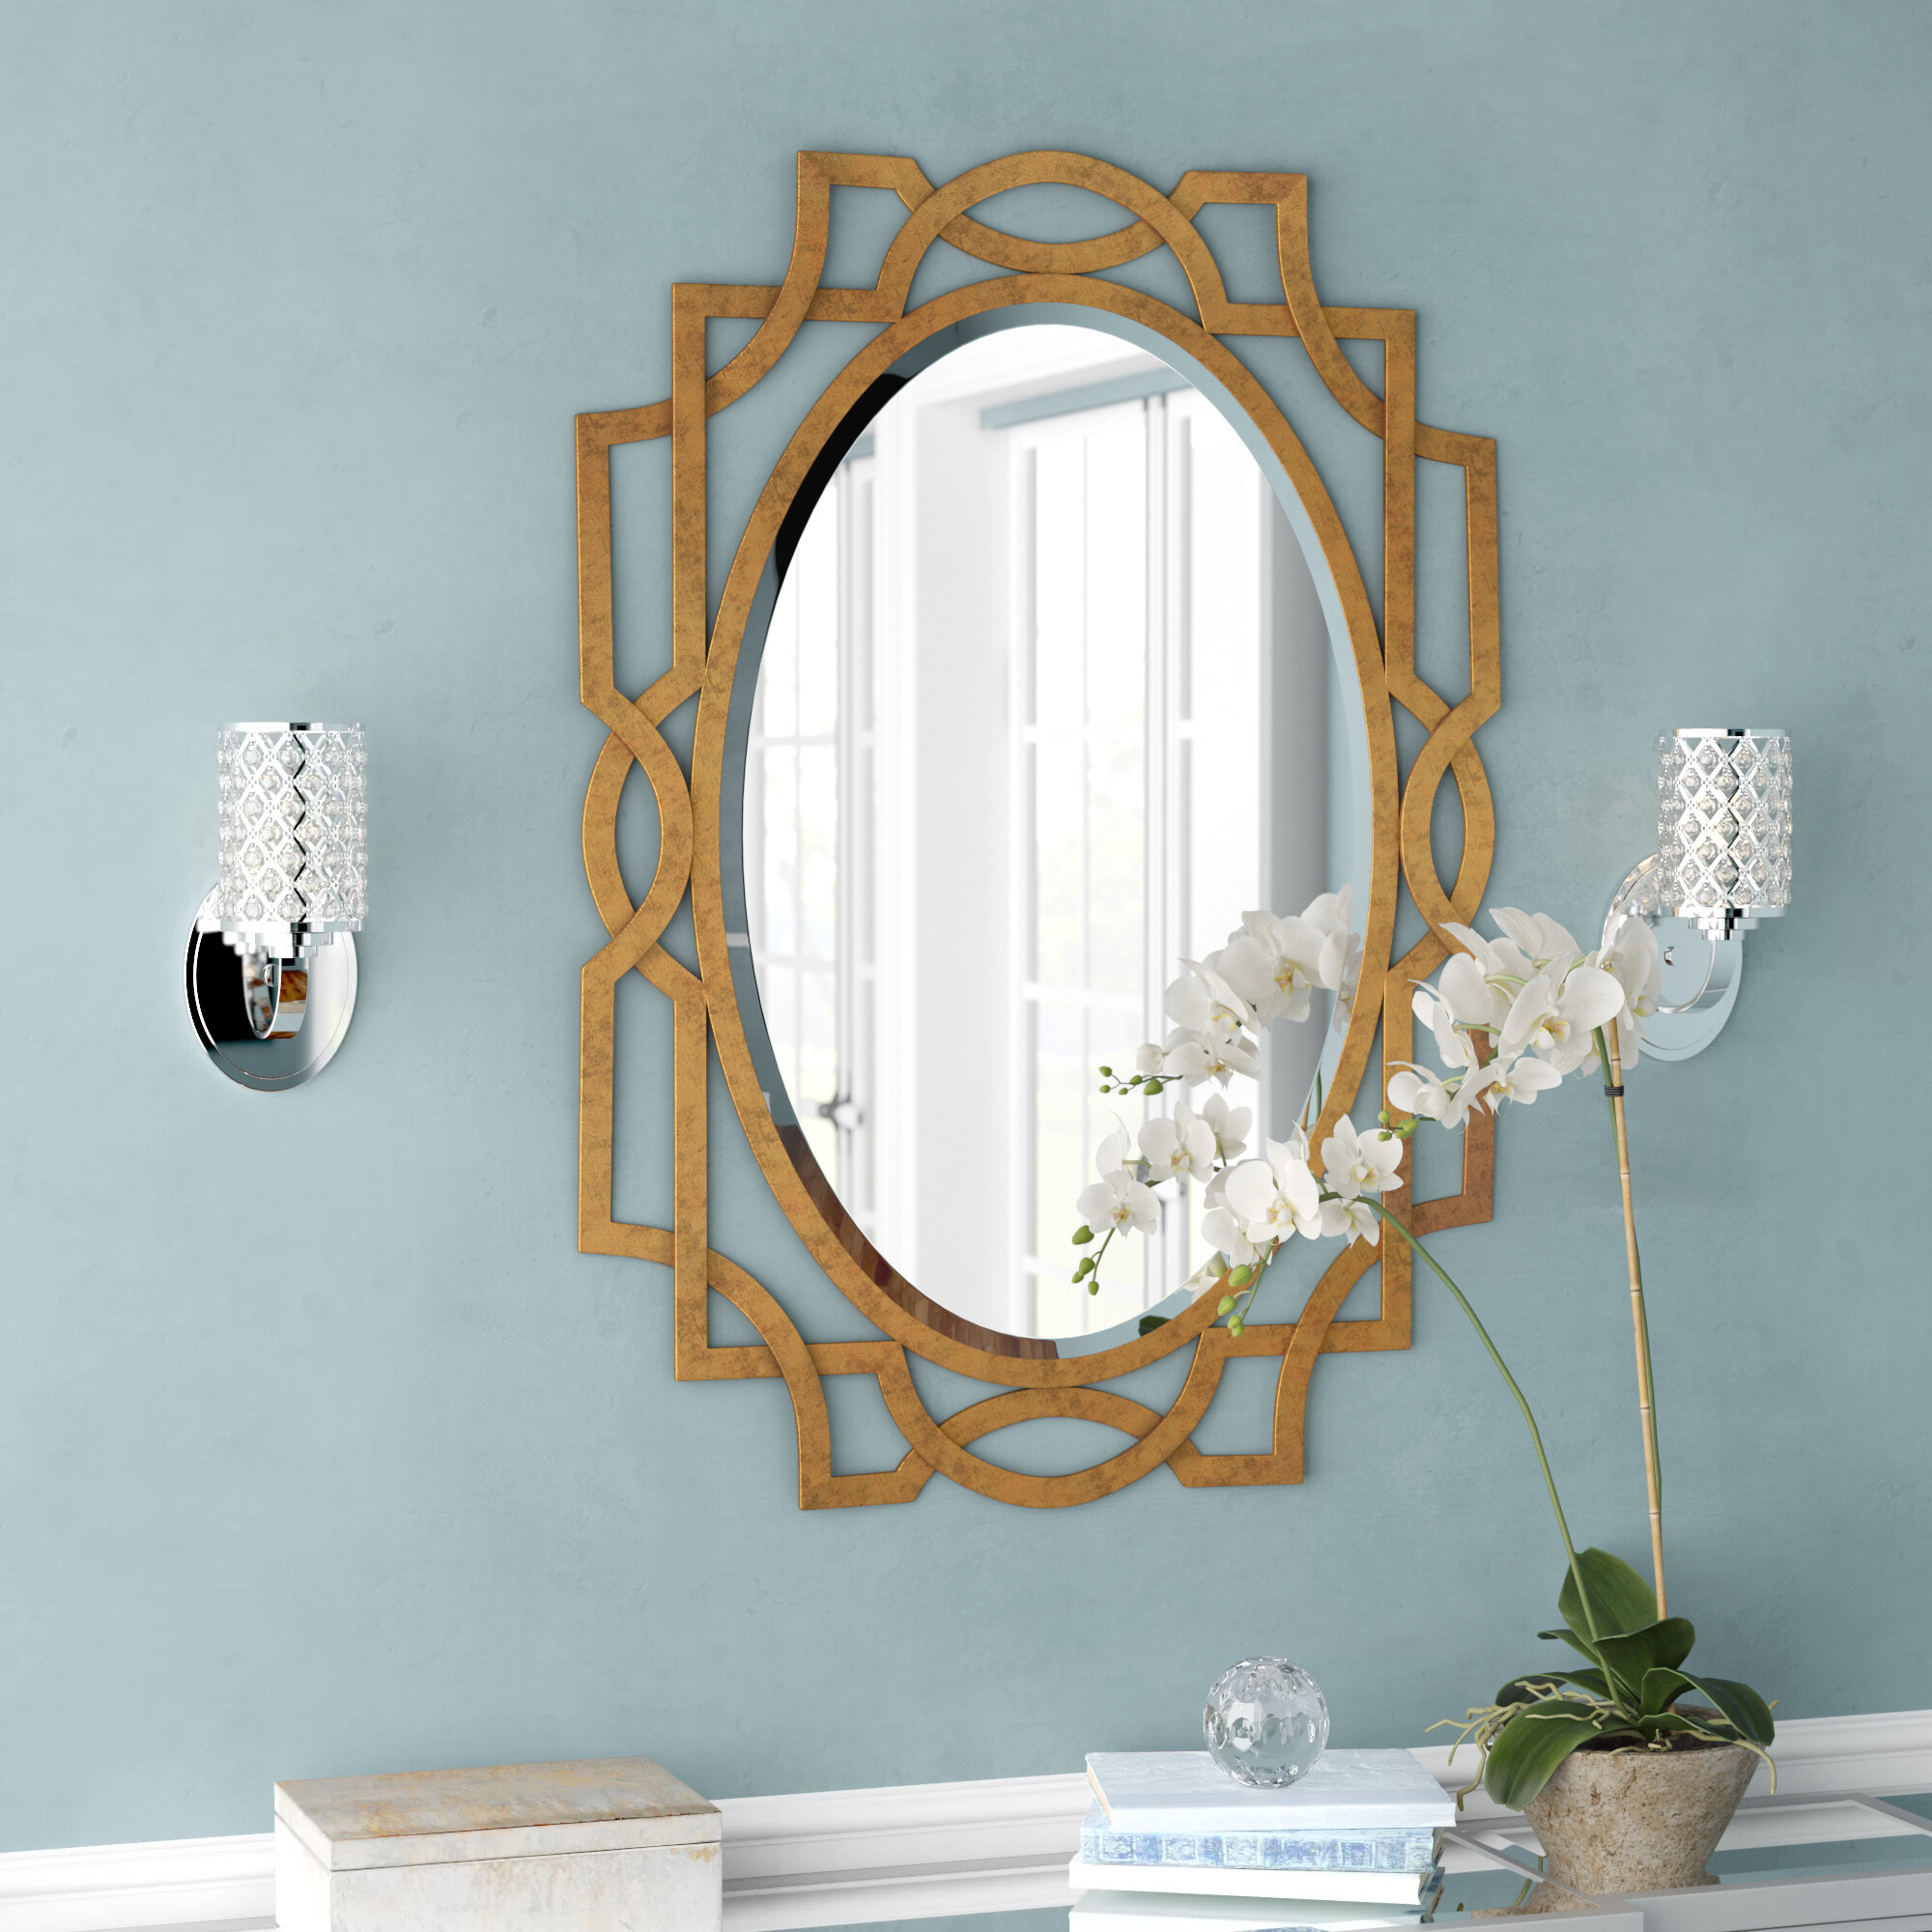 Willa Arlo Interiors Gold Oval Accent Mirror & Reviews | Wayfair